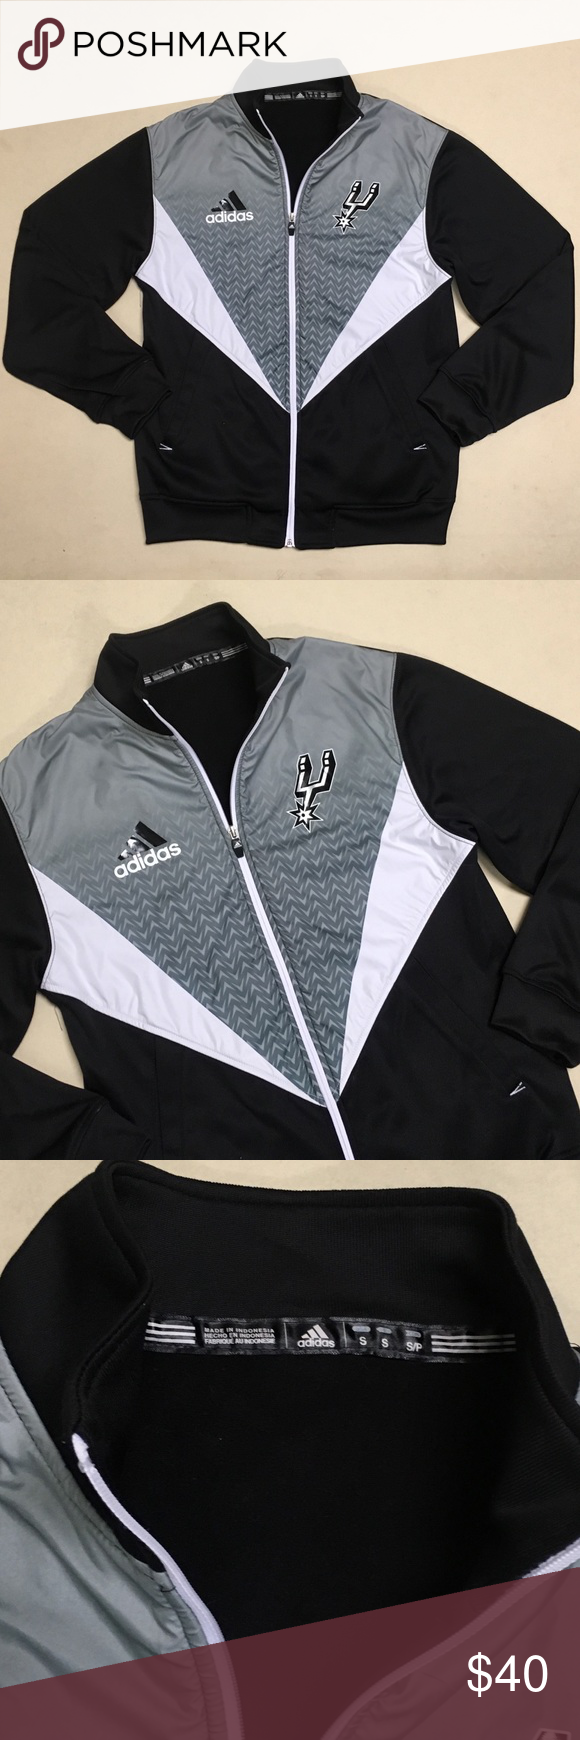 5f795a06a San Antonio Spurs - Adidas Men s Warmup Jacket 🏀 San Antonio Spurs Adidas  Warmup Jacket Size Men s Small Excellent condition!!